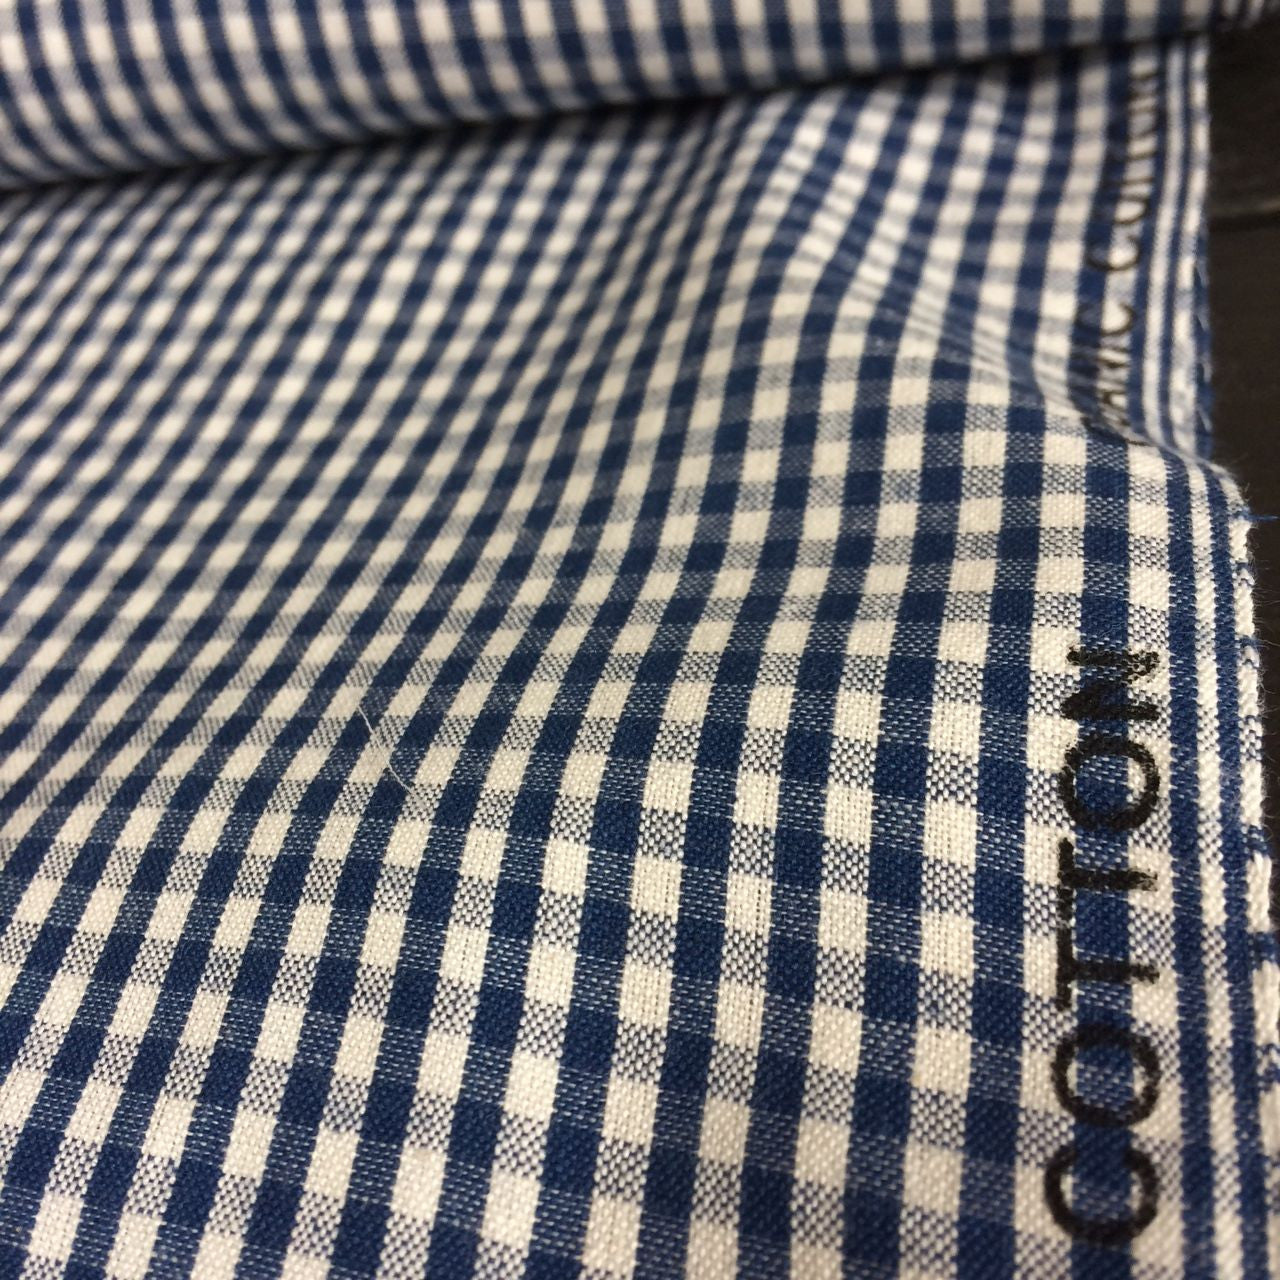 100% Organic Cotton Small Woven Gingham Check Navy